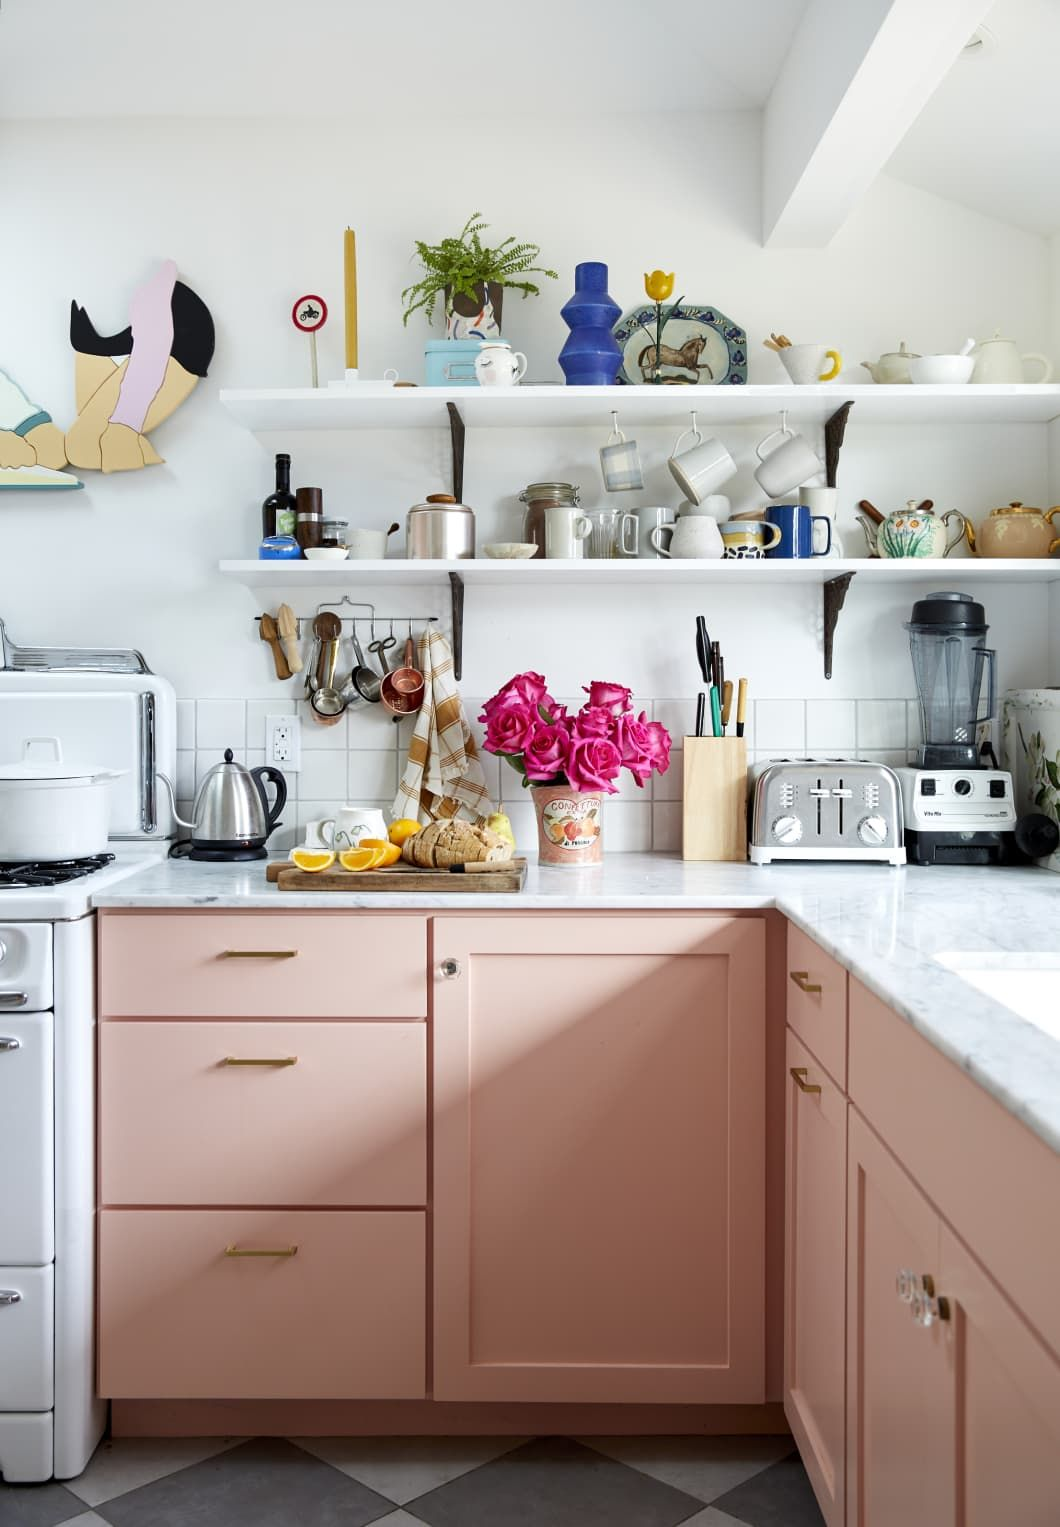 This Kitchen Was Inspired by More than 150 Other Kitchens - Pink kitchen cabinets, Interior design kitchen, Pink kitchen, Kitchen renovation, Kitchen colors, Pastel kitchen - When you're a professional photographer and you shoot kitchens for a living, you learn what it is you want in a remodeled space  For Leela Cyd, that was a pink kitchen